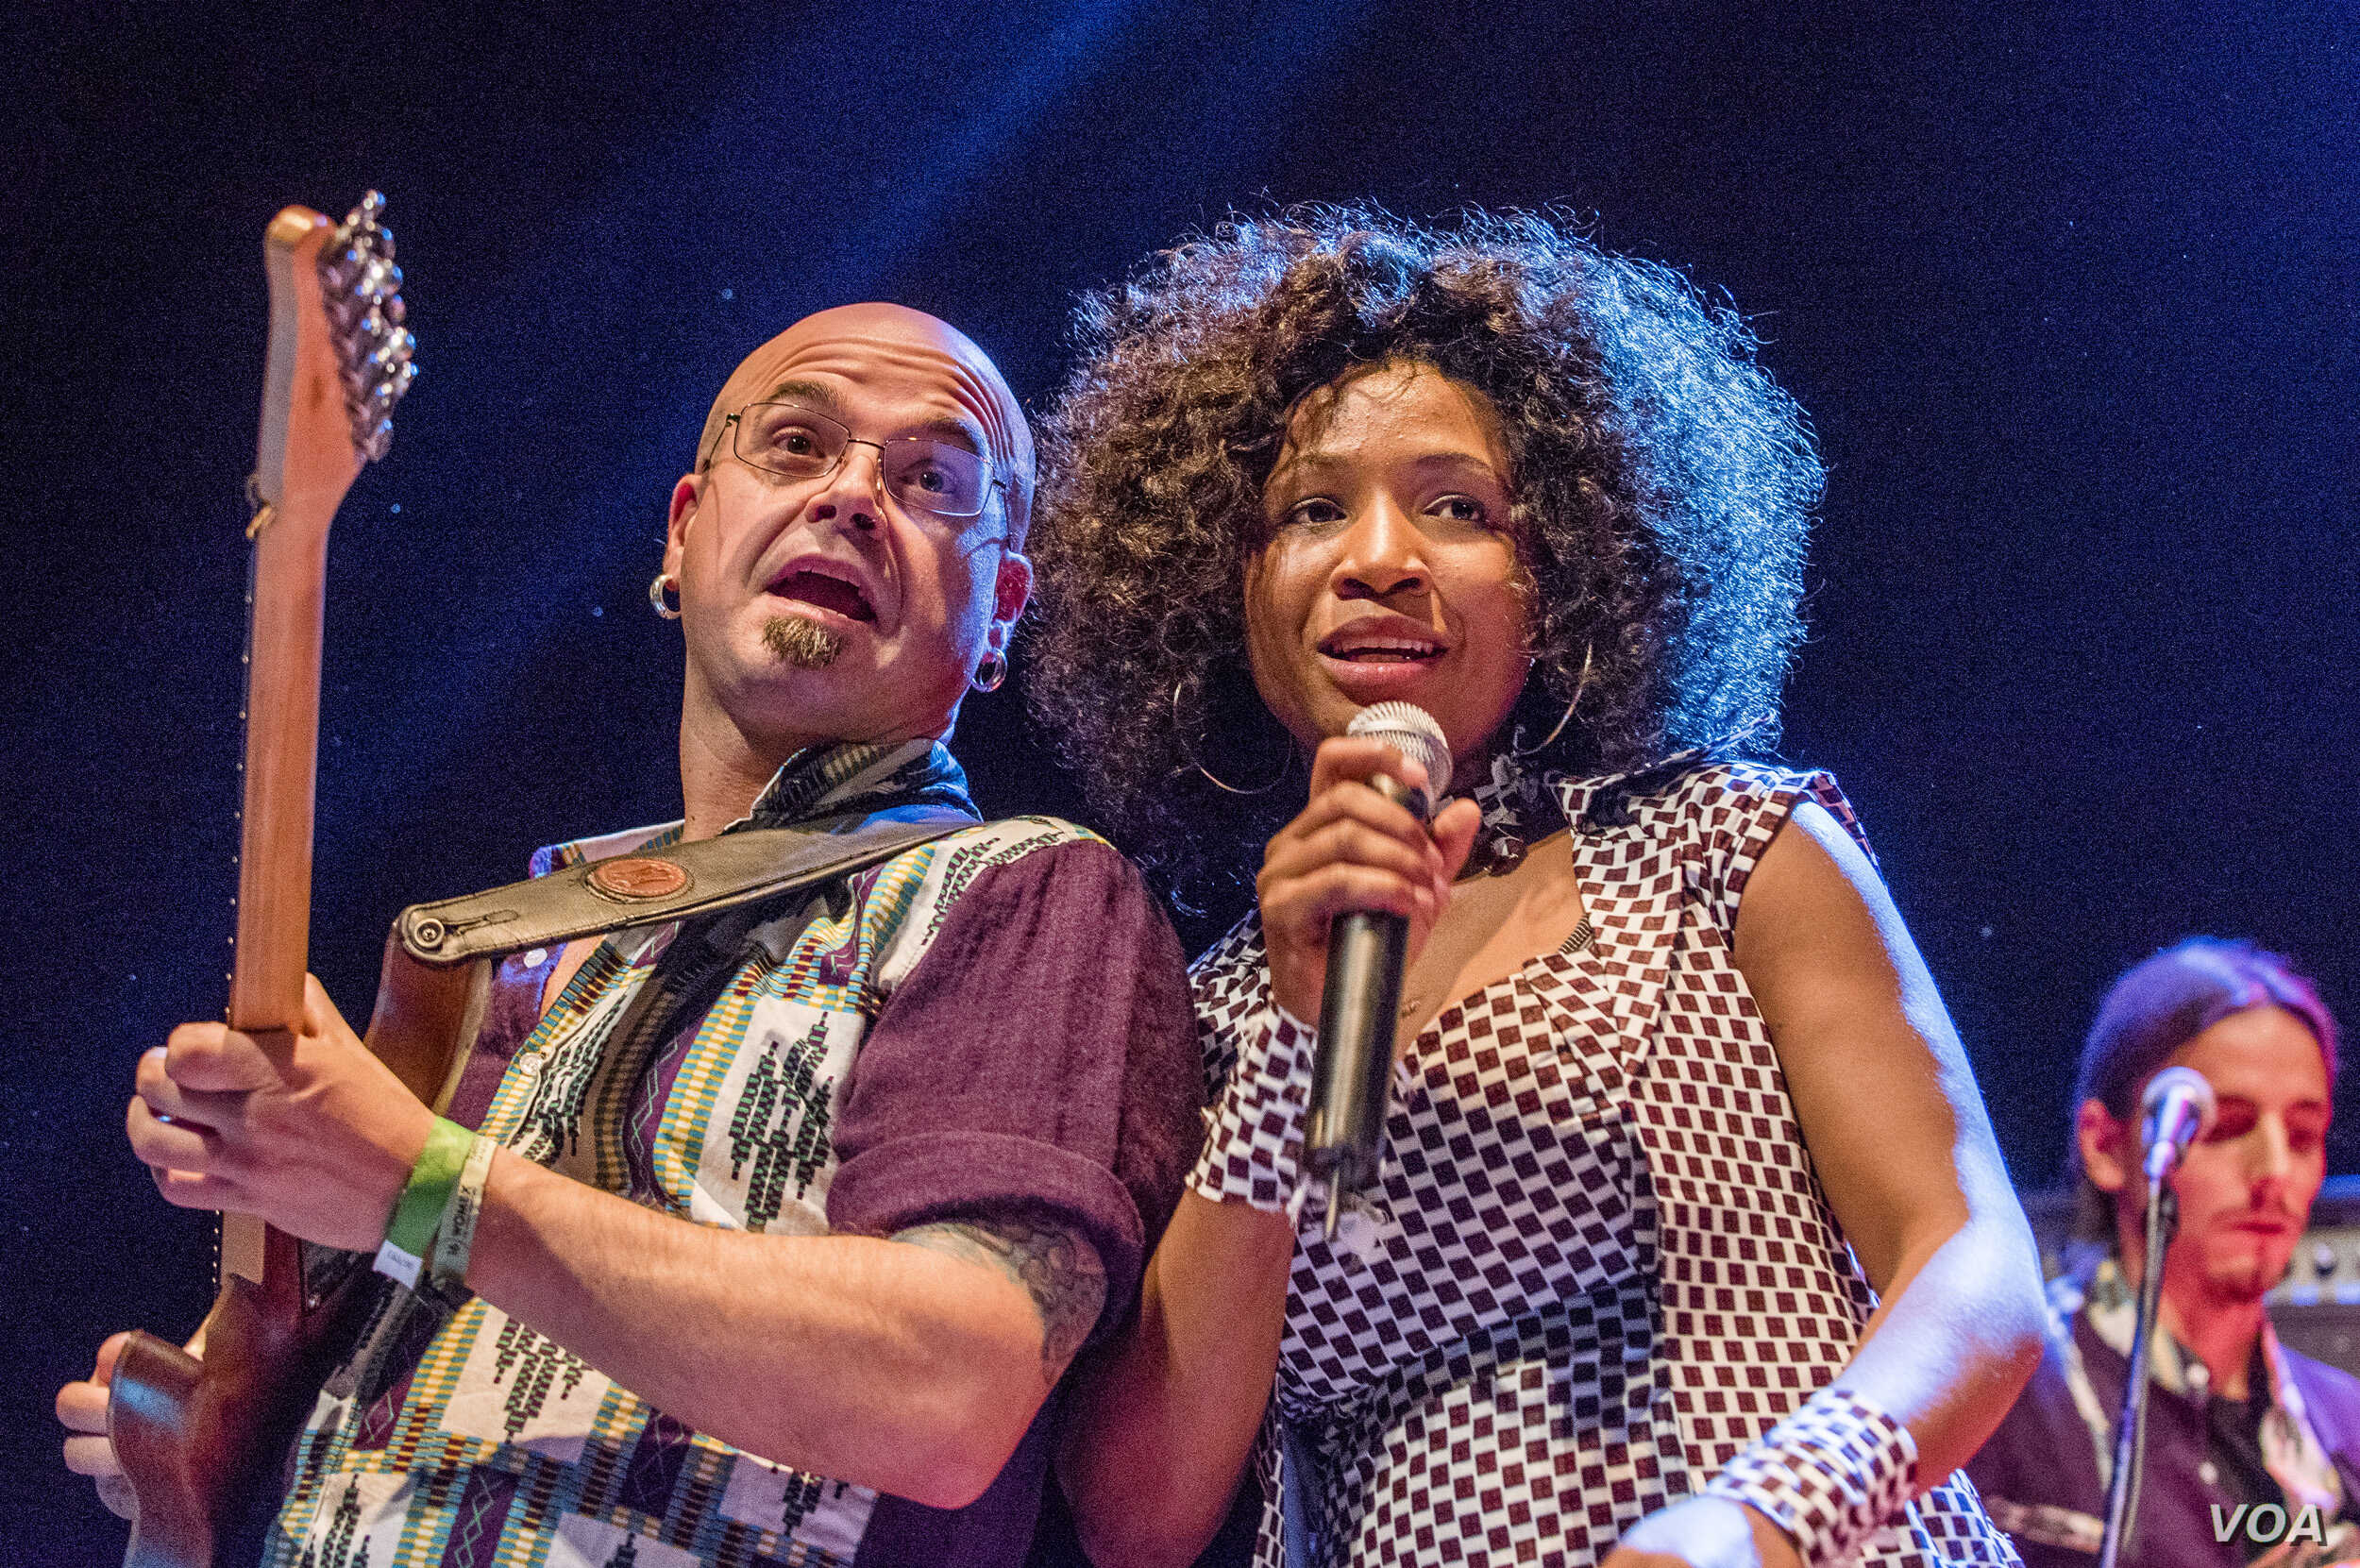 Nakany Kanté  performs at the WOMEX World Music Expo in Santiago de Compostela, Spain in October 2016.